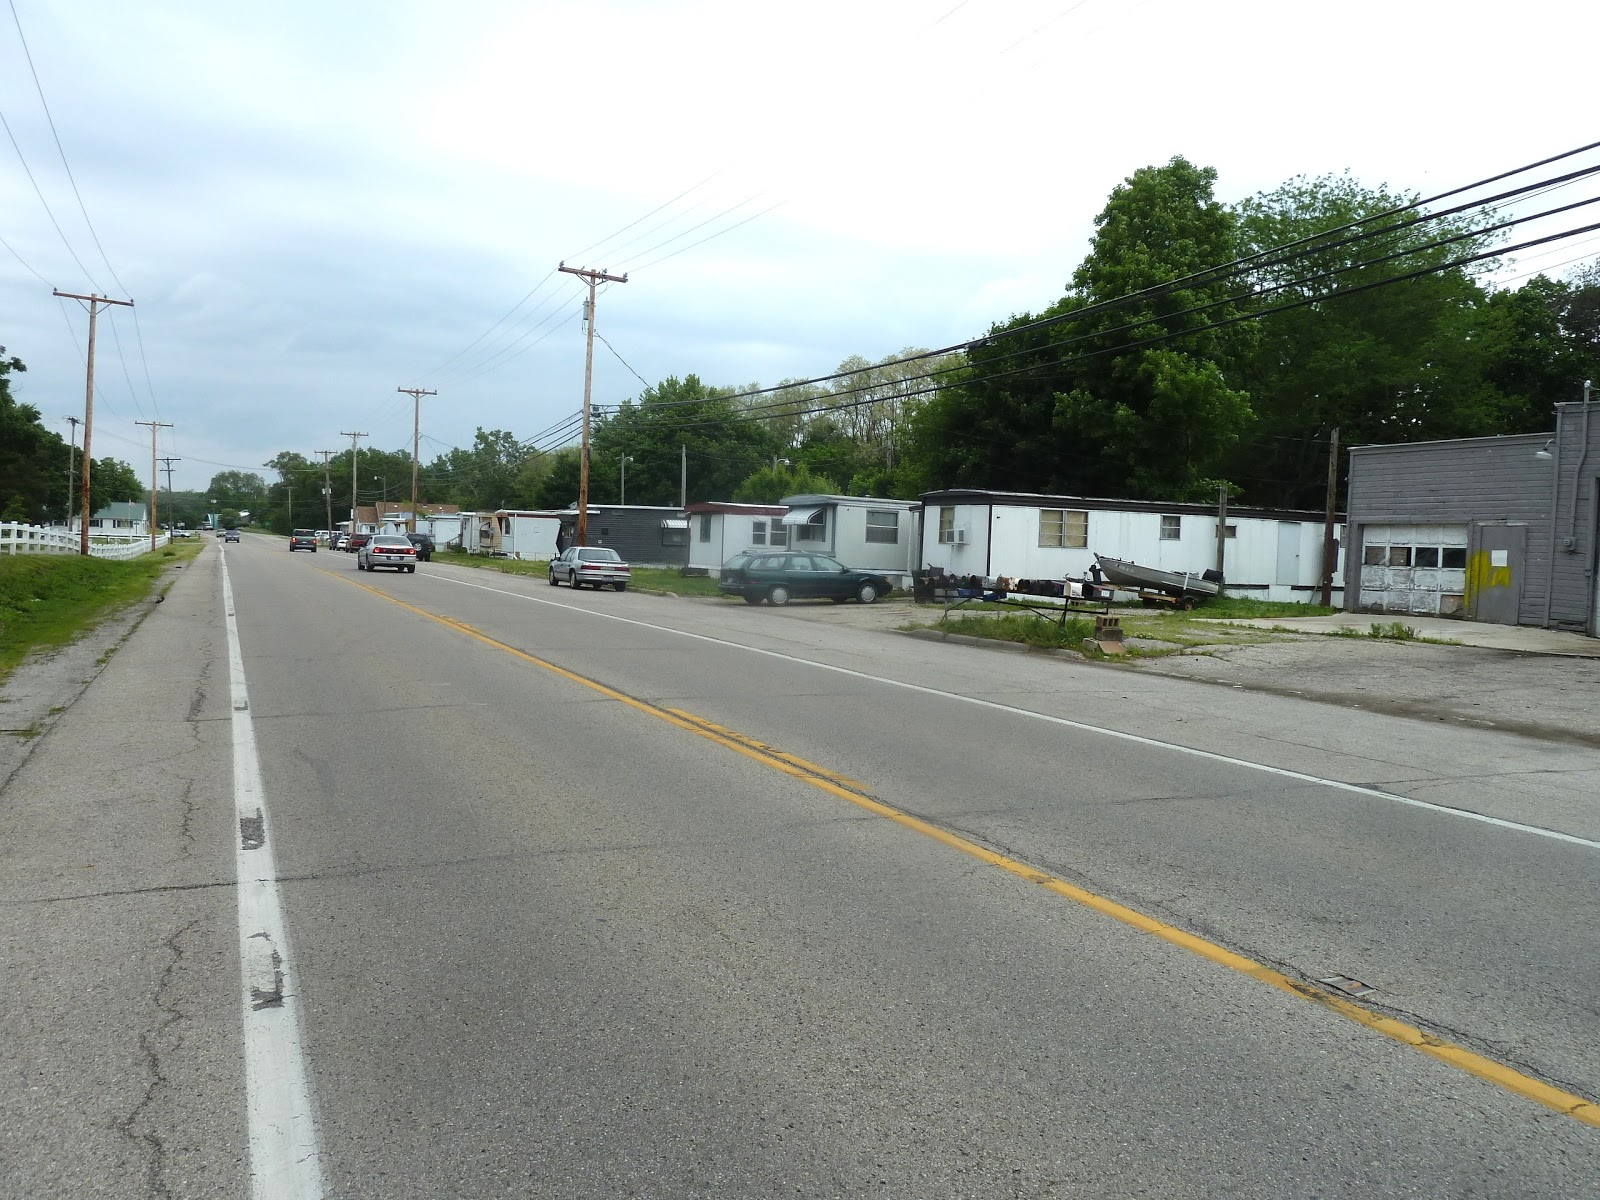 SAM And ME Are About To Enter Into The Open Countrysideevidence By Line Of Quickly Deterioriating Mobile Homes Along Side Route 66